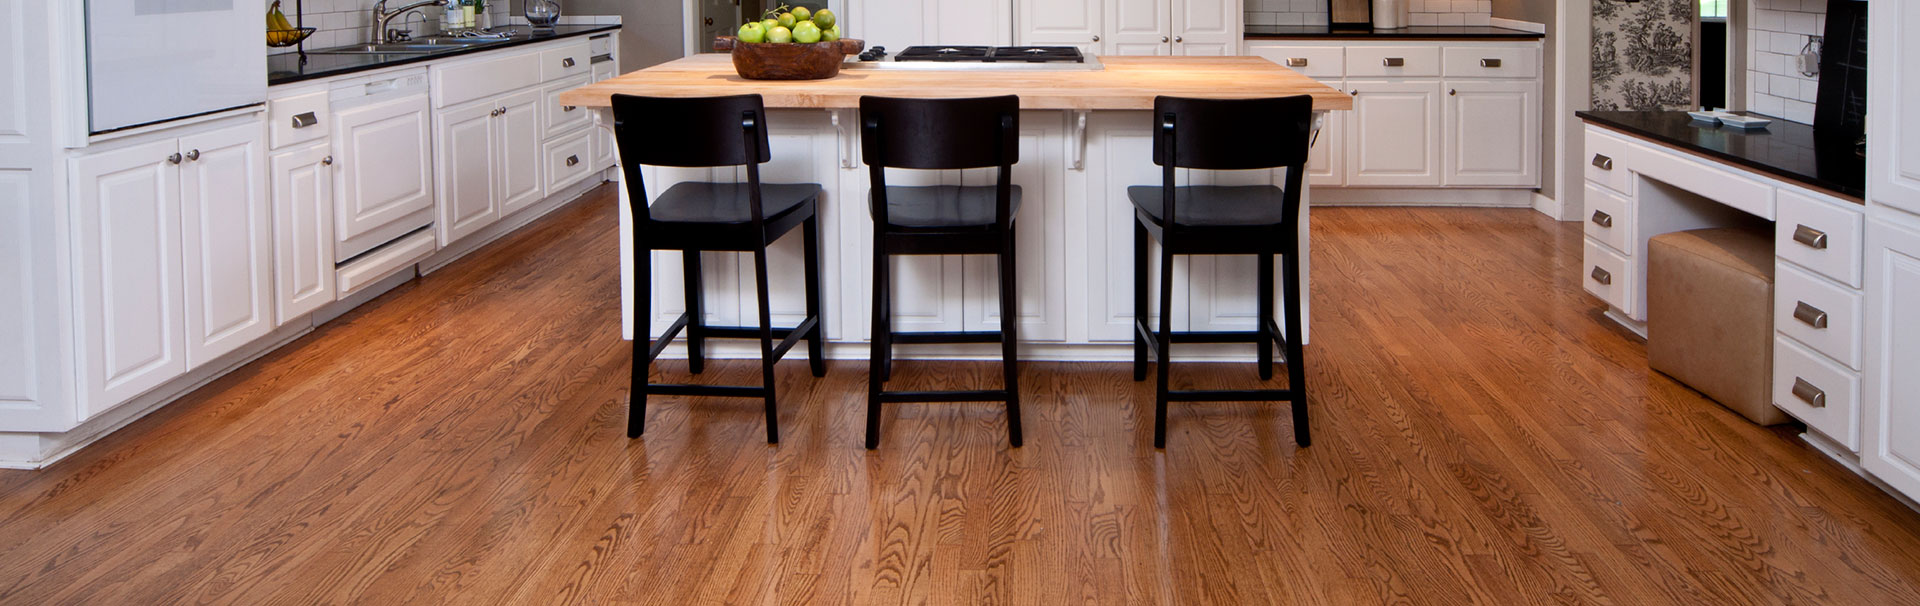 Raw & Engineered Wood Flooring Sales & Installation